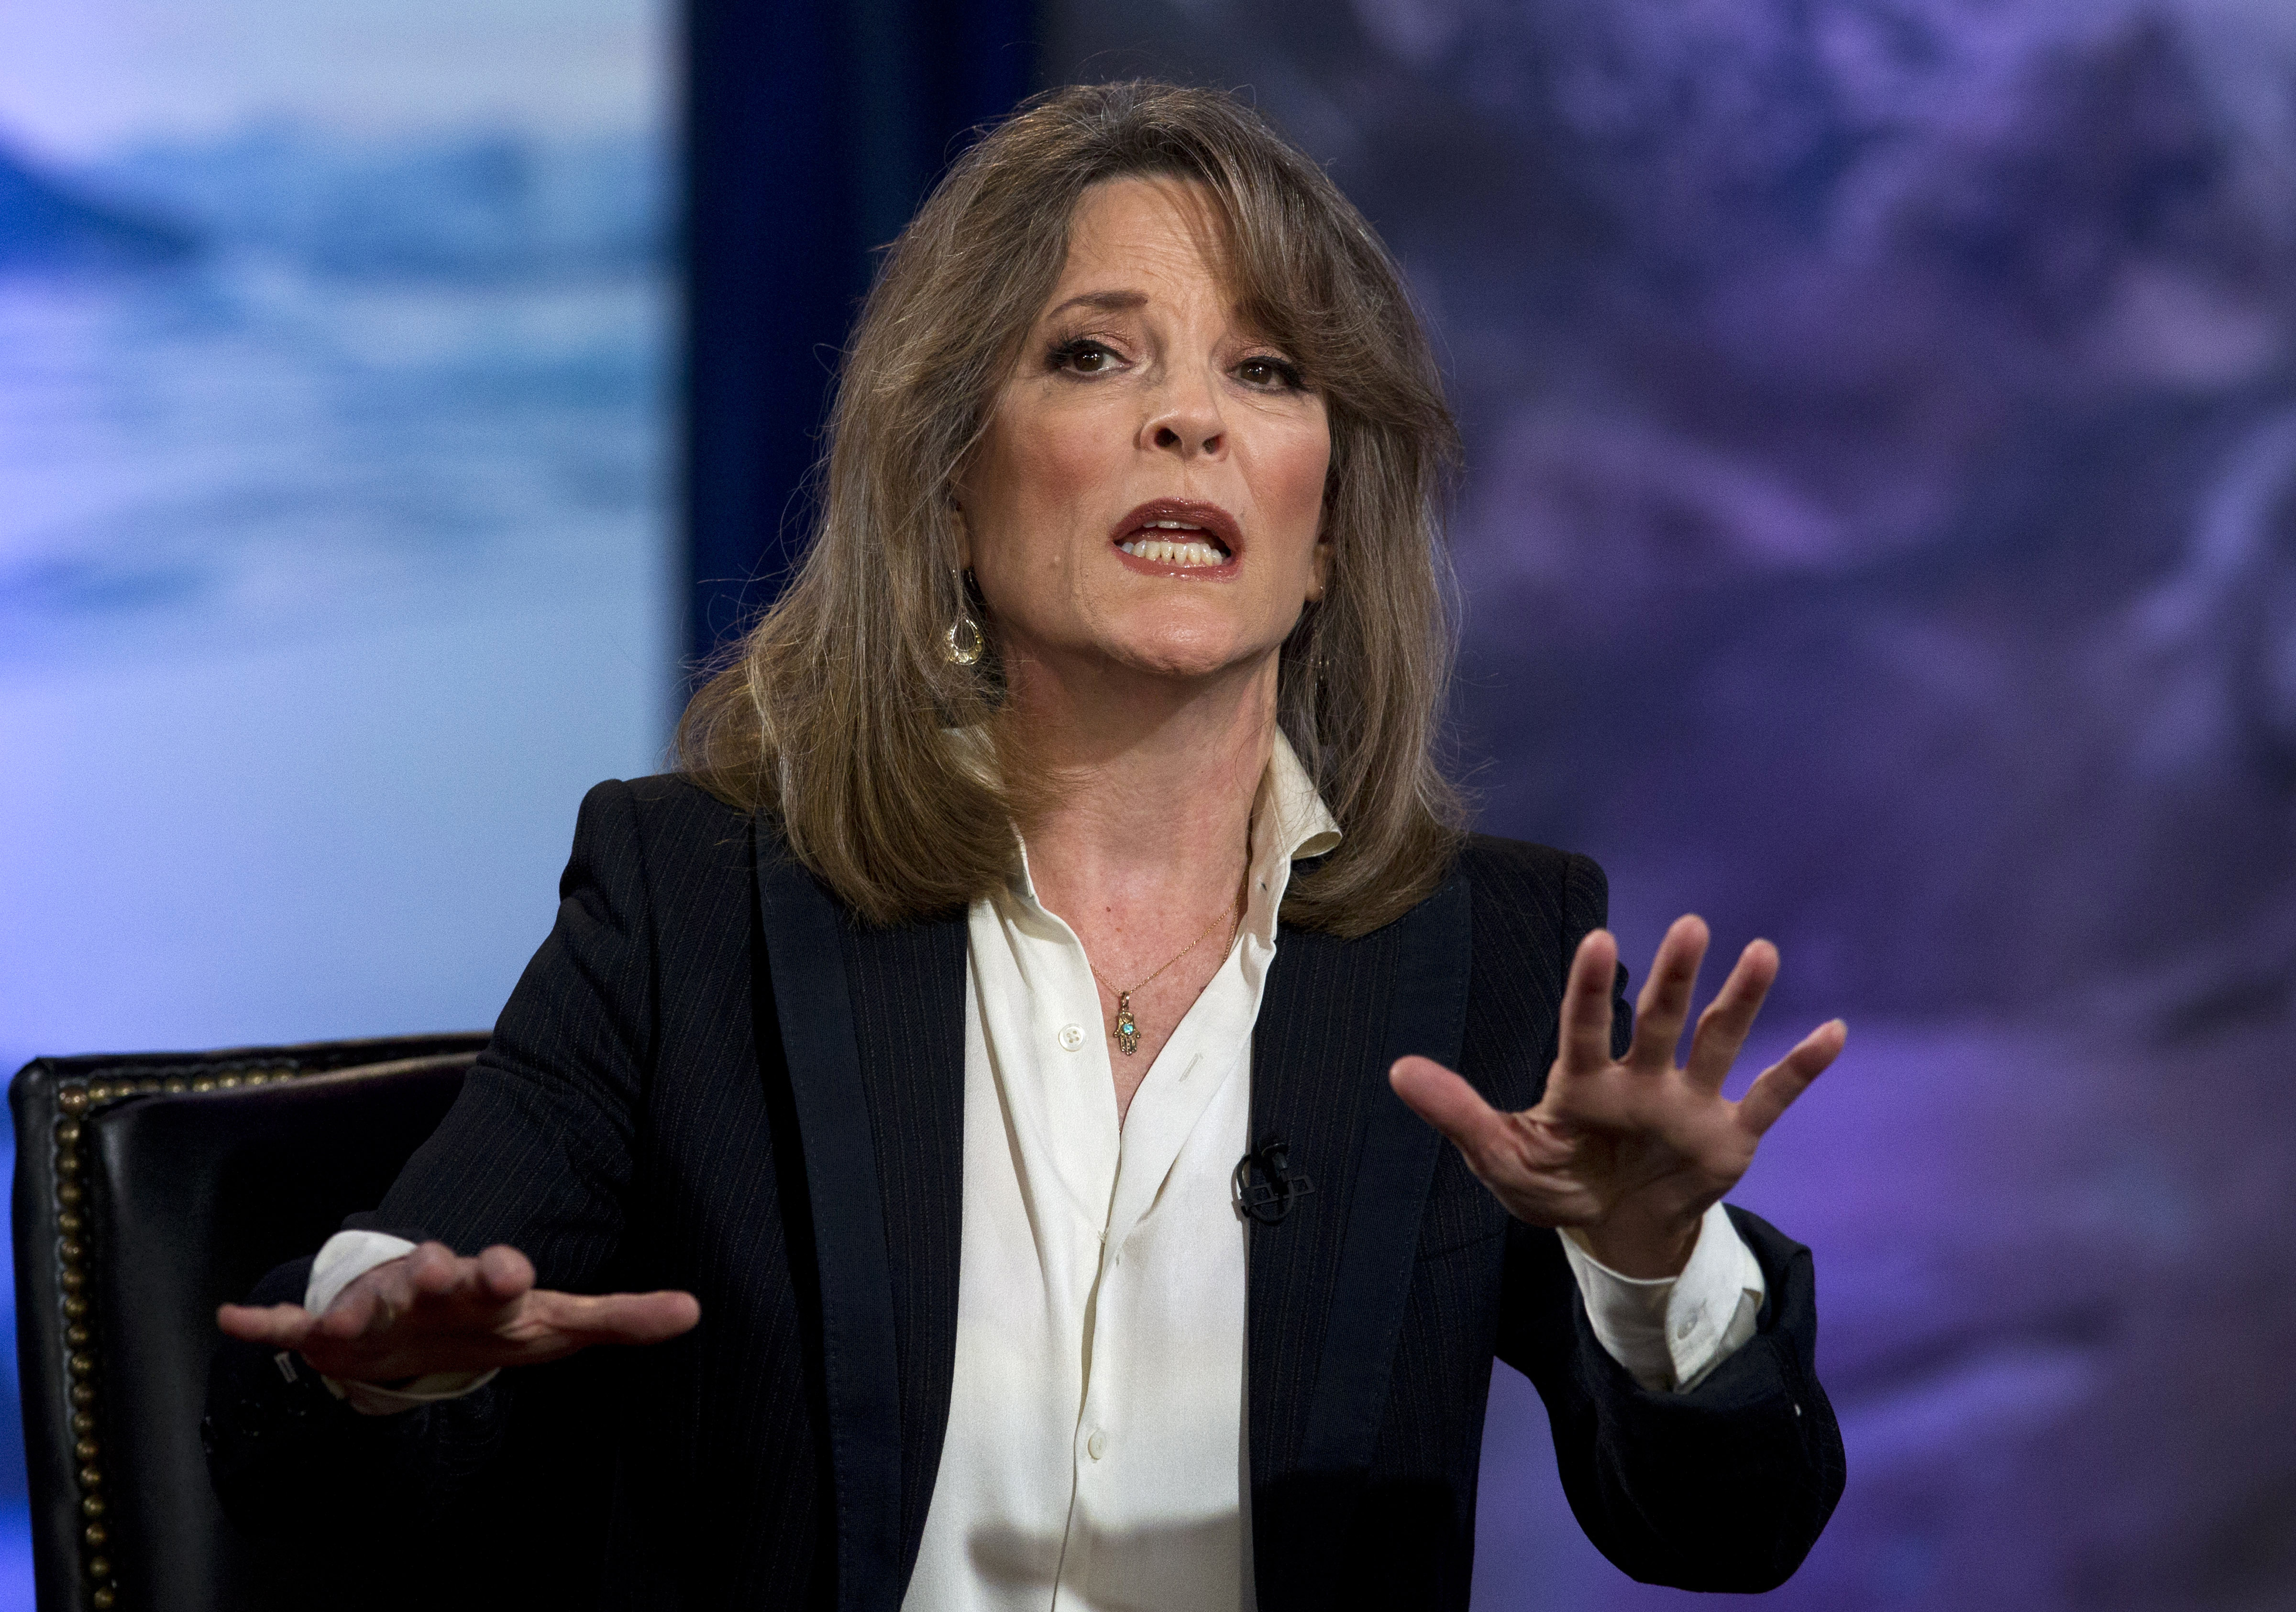 Marianne Williamson isn't dropping campaign after rivals' lackluster debate and show of 'faux democracy'